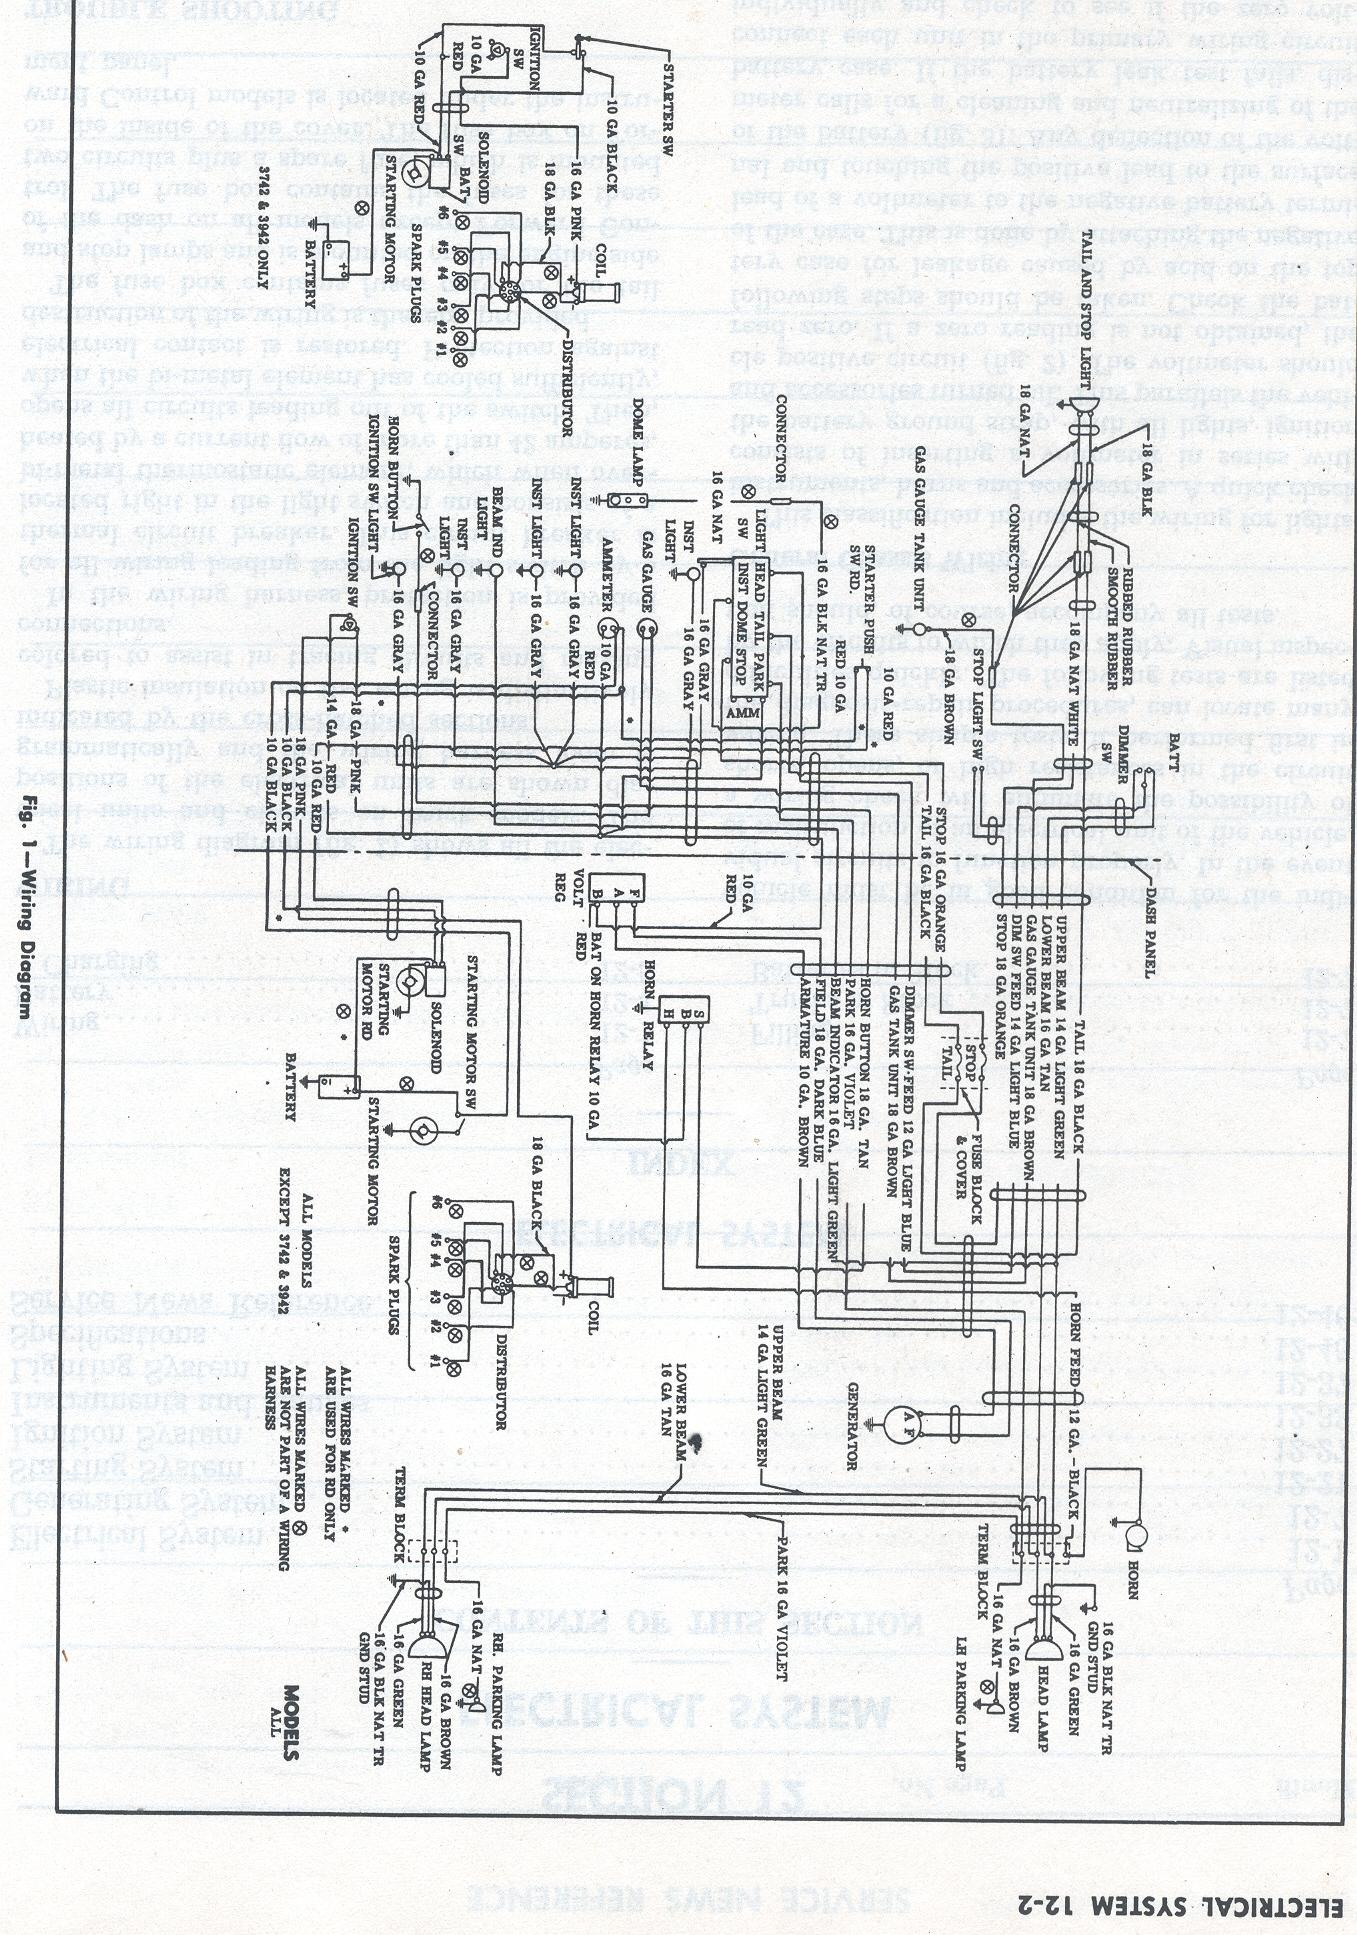 small resolution of wiring diagram 1968 m715 m38a1 wiring diagram humvee wiring chevytruck 1954shop manual wiring resize